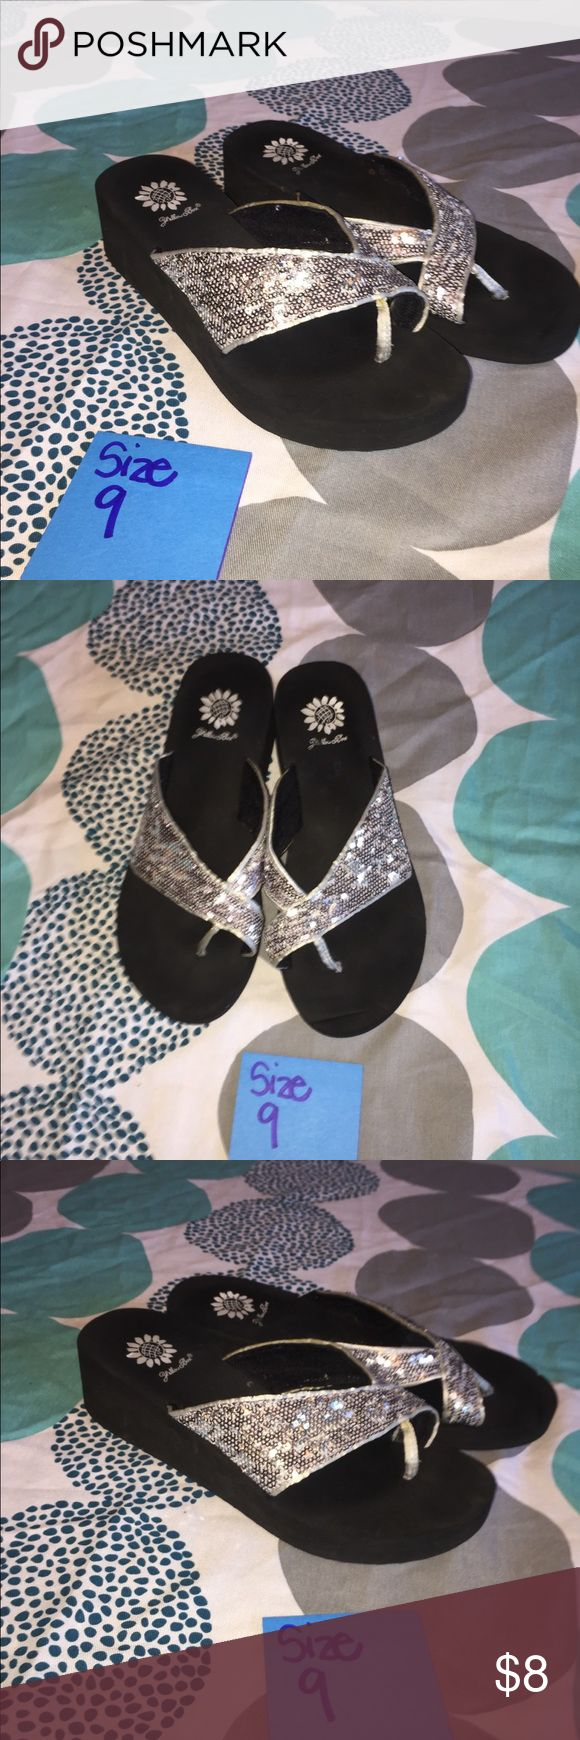 Size 9 Yellow Box Flip Flops with Silver Sequins Size 9 Yellow Box Silver Sequin Flip Flip Sandals Yellow Box Shoes Sandals